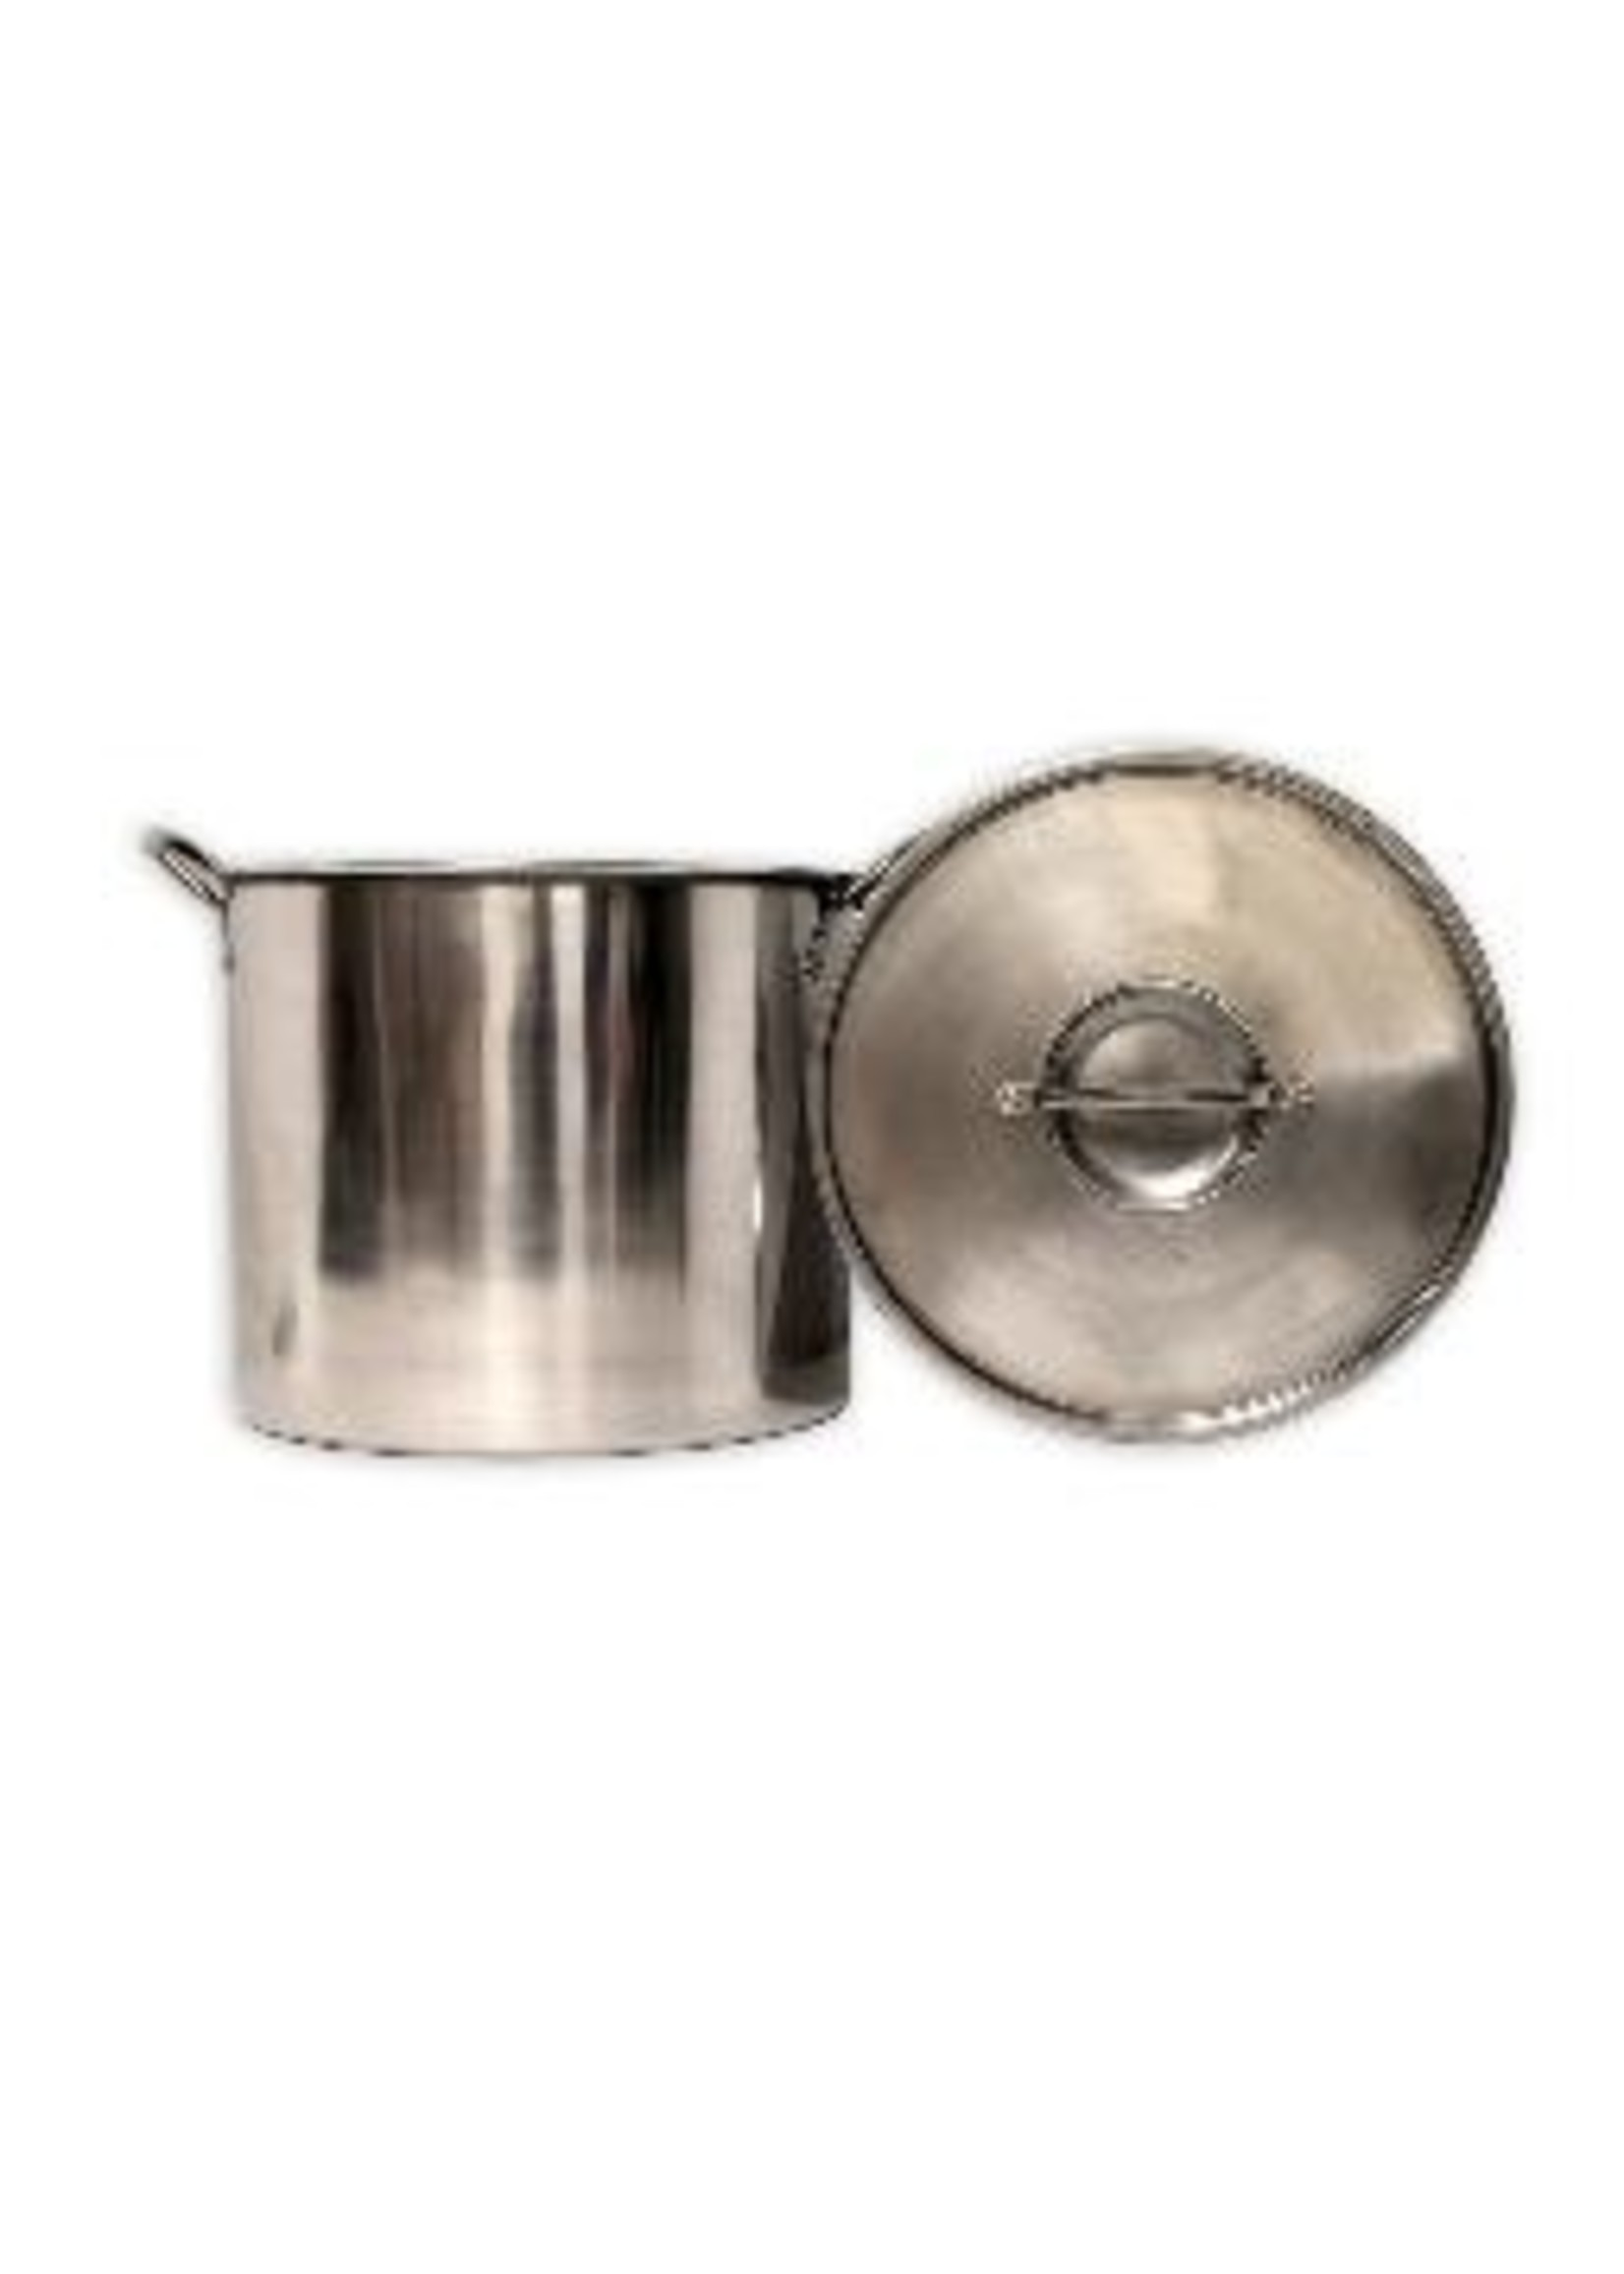 Brewing Eco-Pot 20 Quart Stainless Steel Kettle With Lid